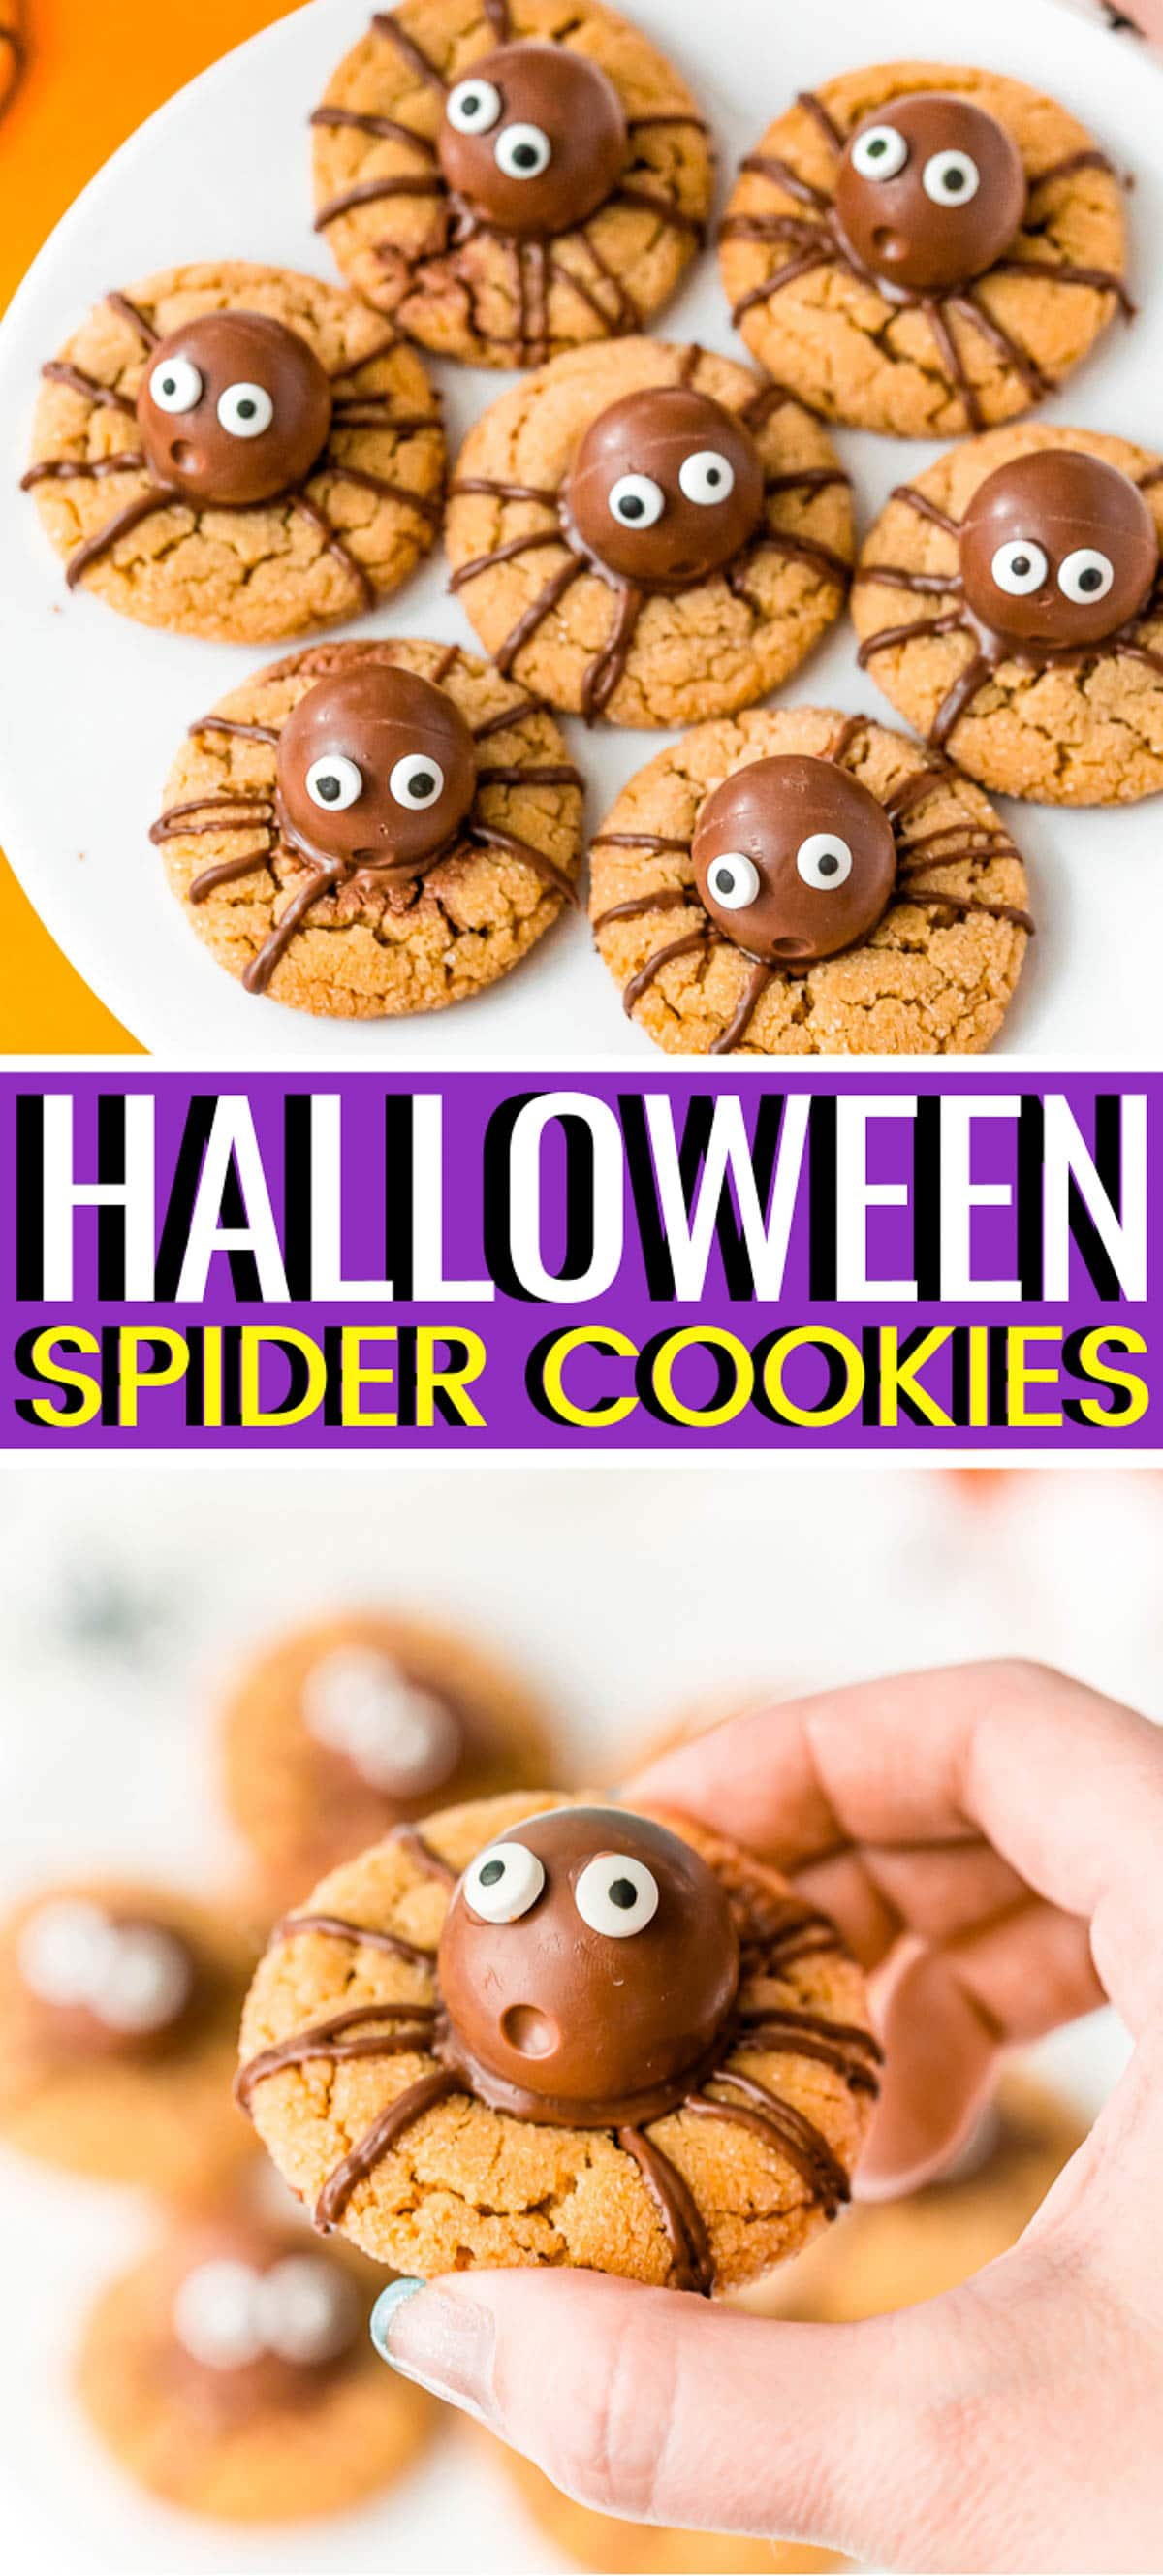 Halloween Spider Cookies are a spooky twist on classic Peanut Butter Blossoms! Made with truffles nestled in soft, chewy peanut butter cookies and decorated with chocolate and candy eyes. via @sugarandsoulco